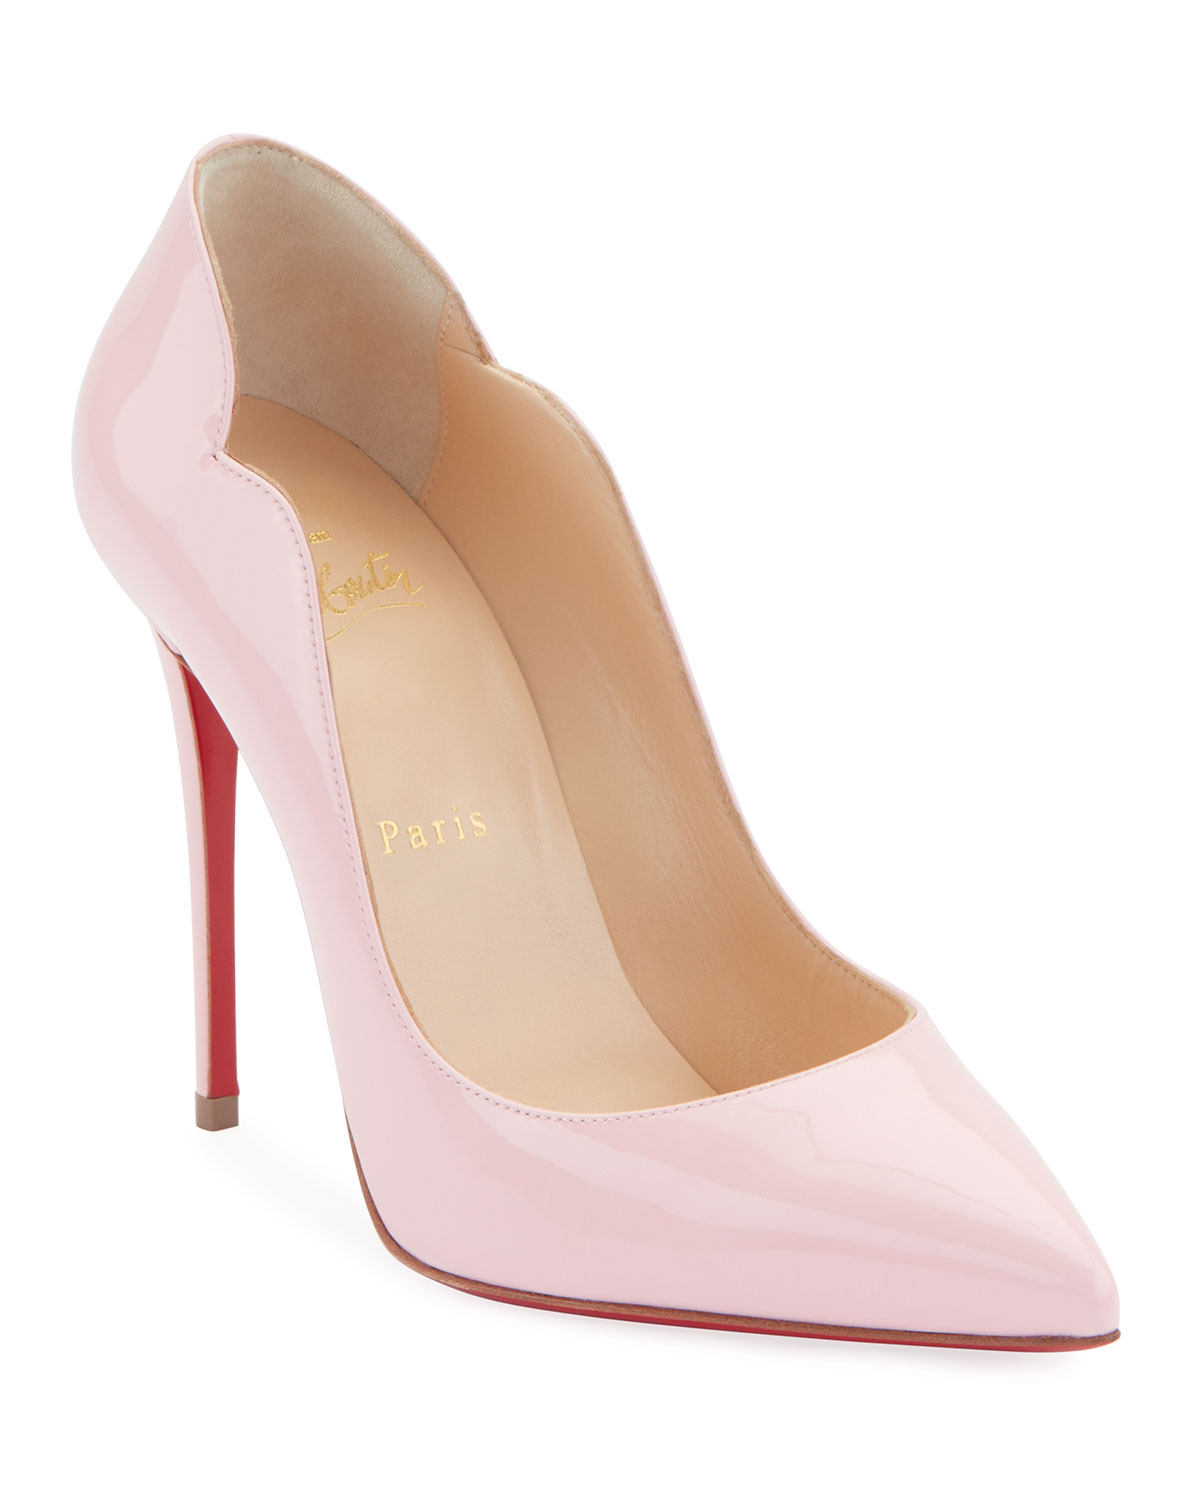 0021e7be4bc Hot Chick 100 Patent Red Sole Pumps